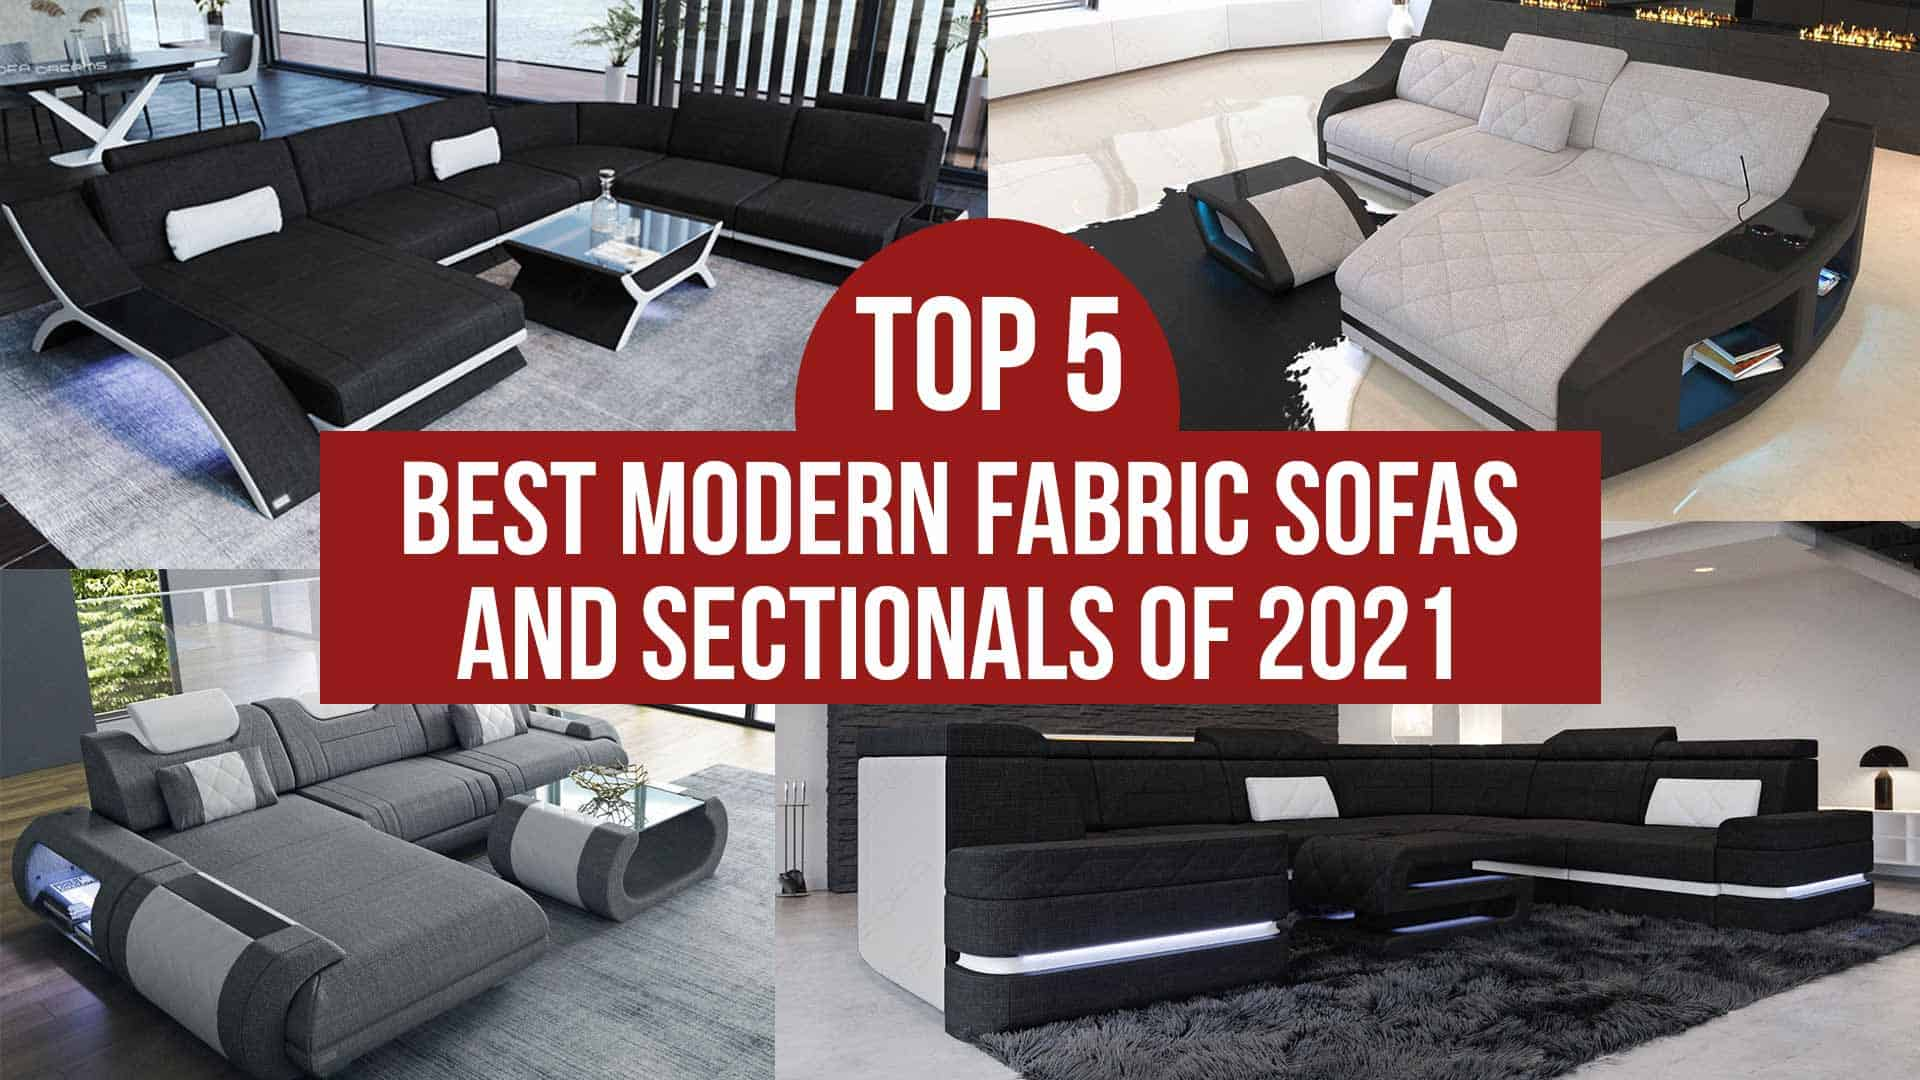 Top 5 Best Modern Fabric Sofas and Sectionals of 2021